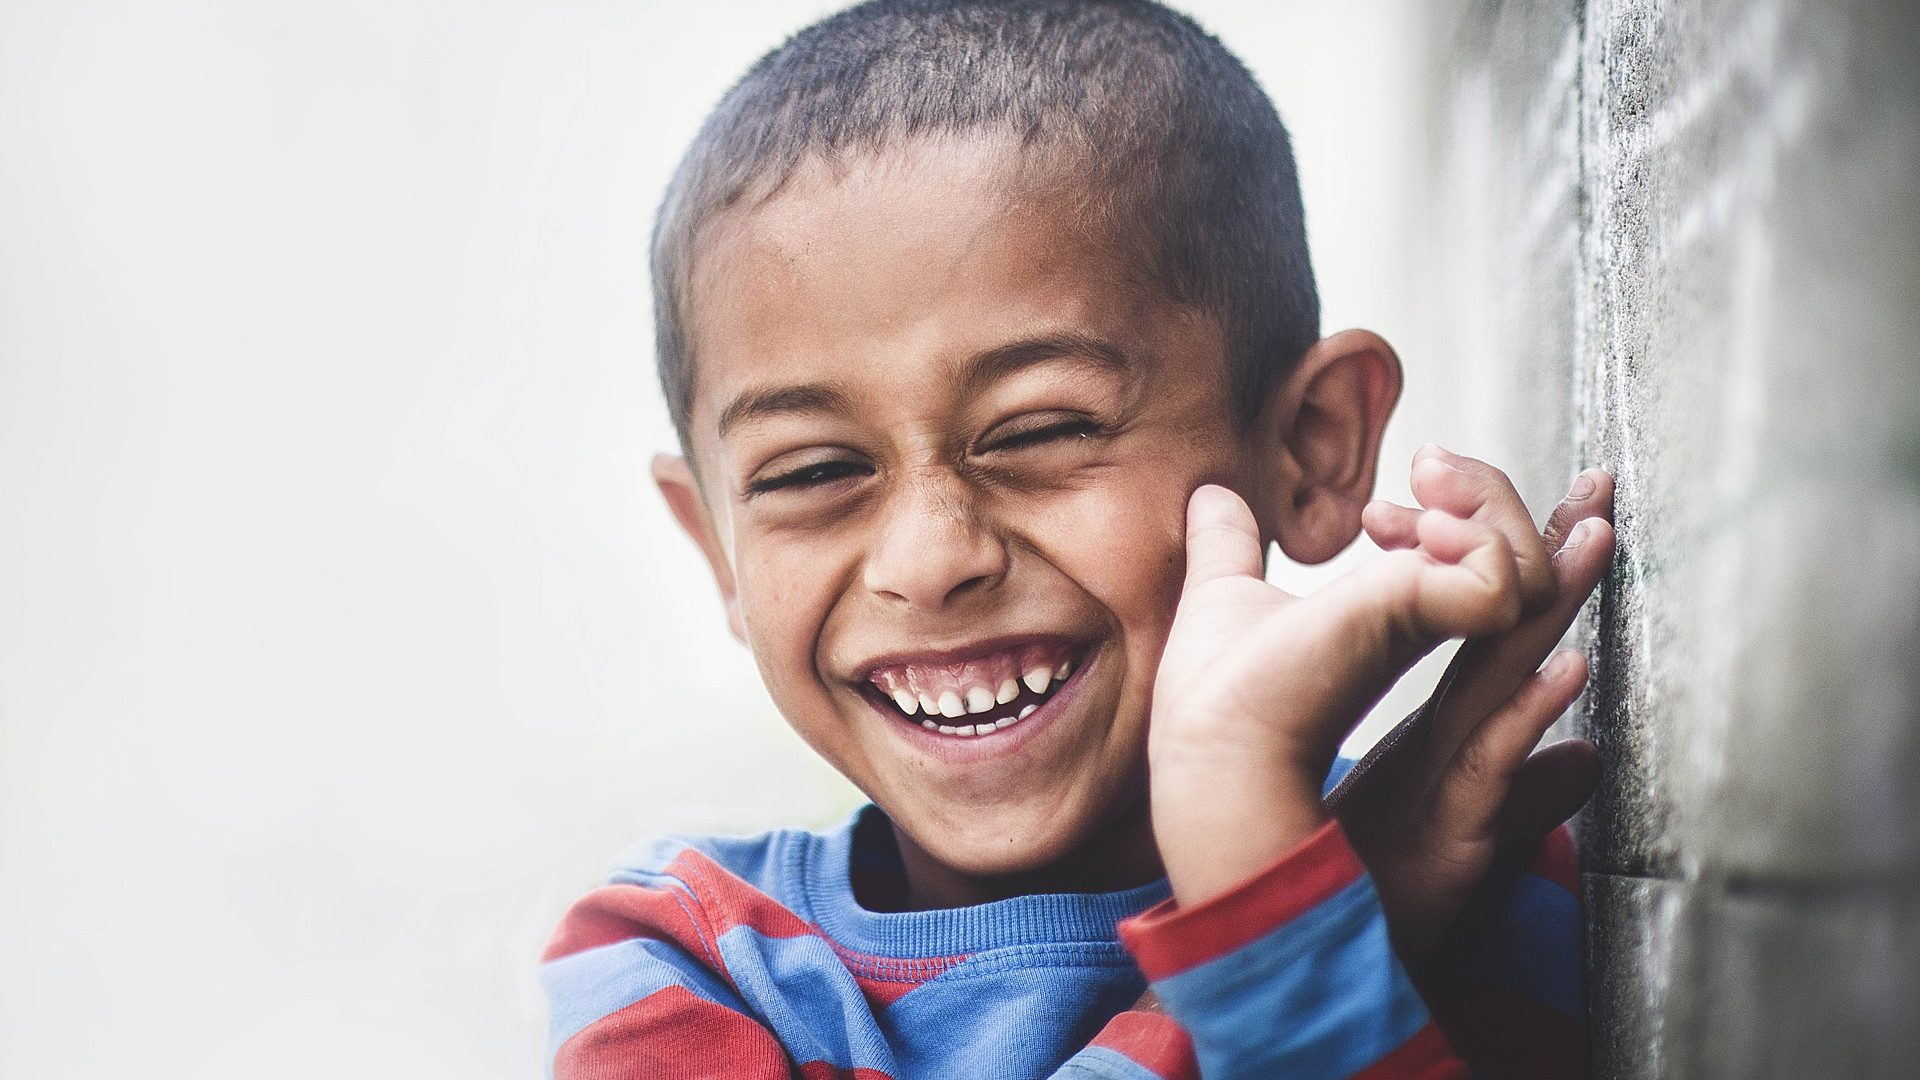 Image: Boy in a striped shirt smiling. Smiling is a facial expression, example of one of the universal expressions of emotion.